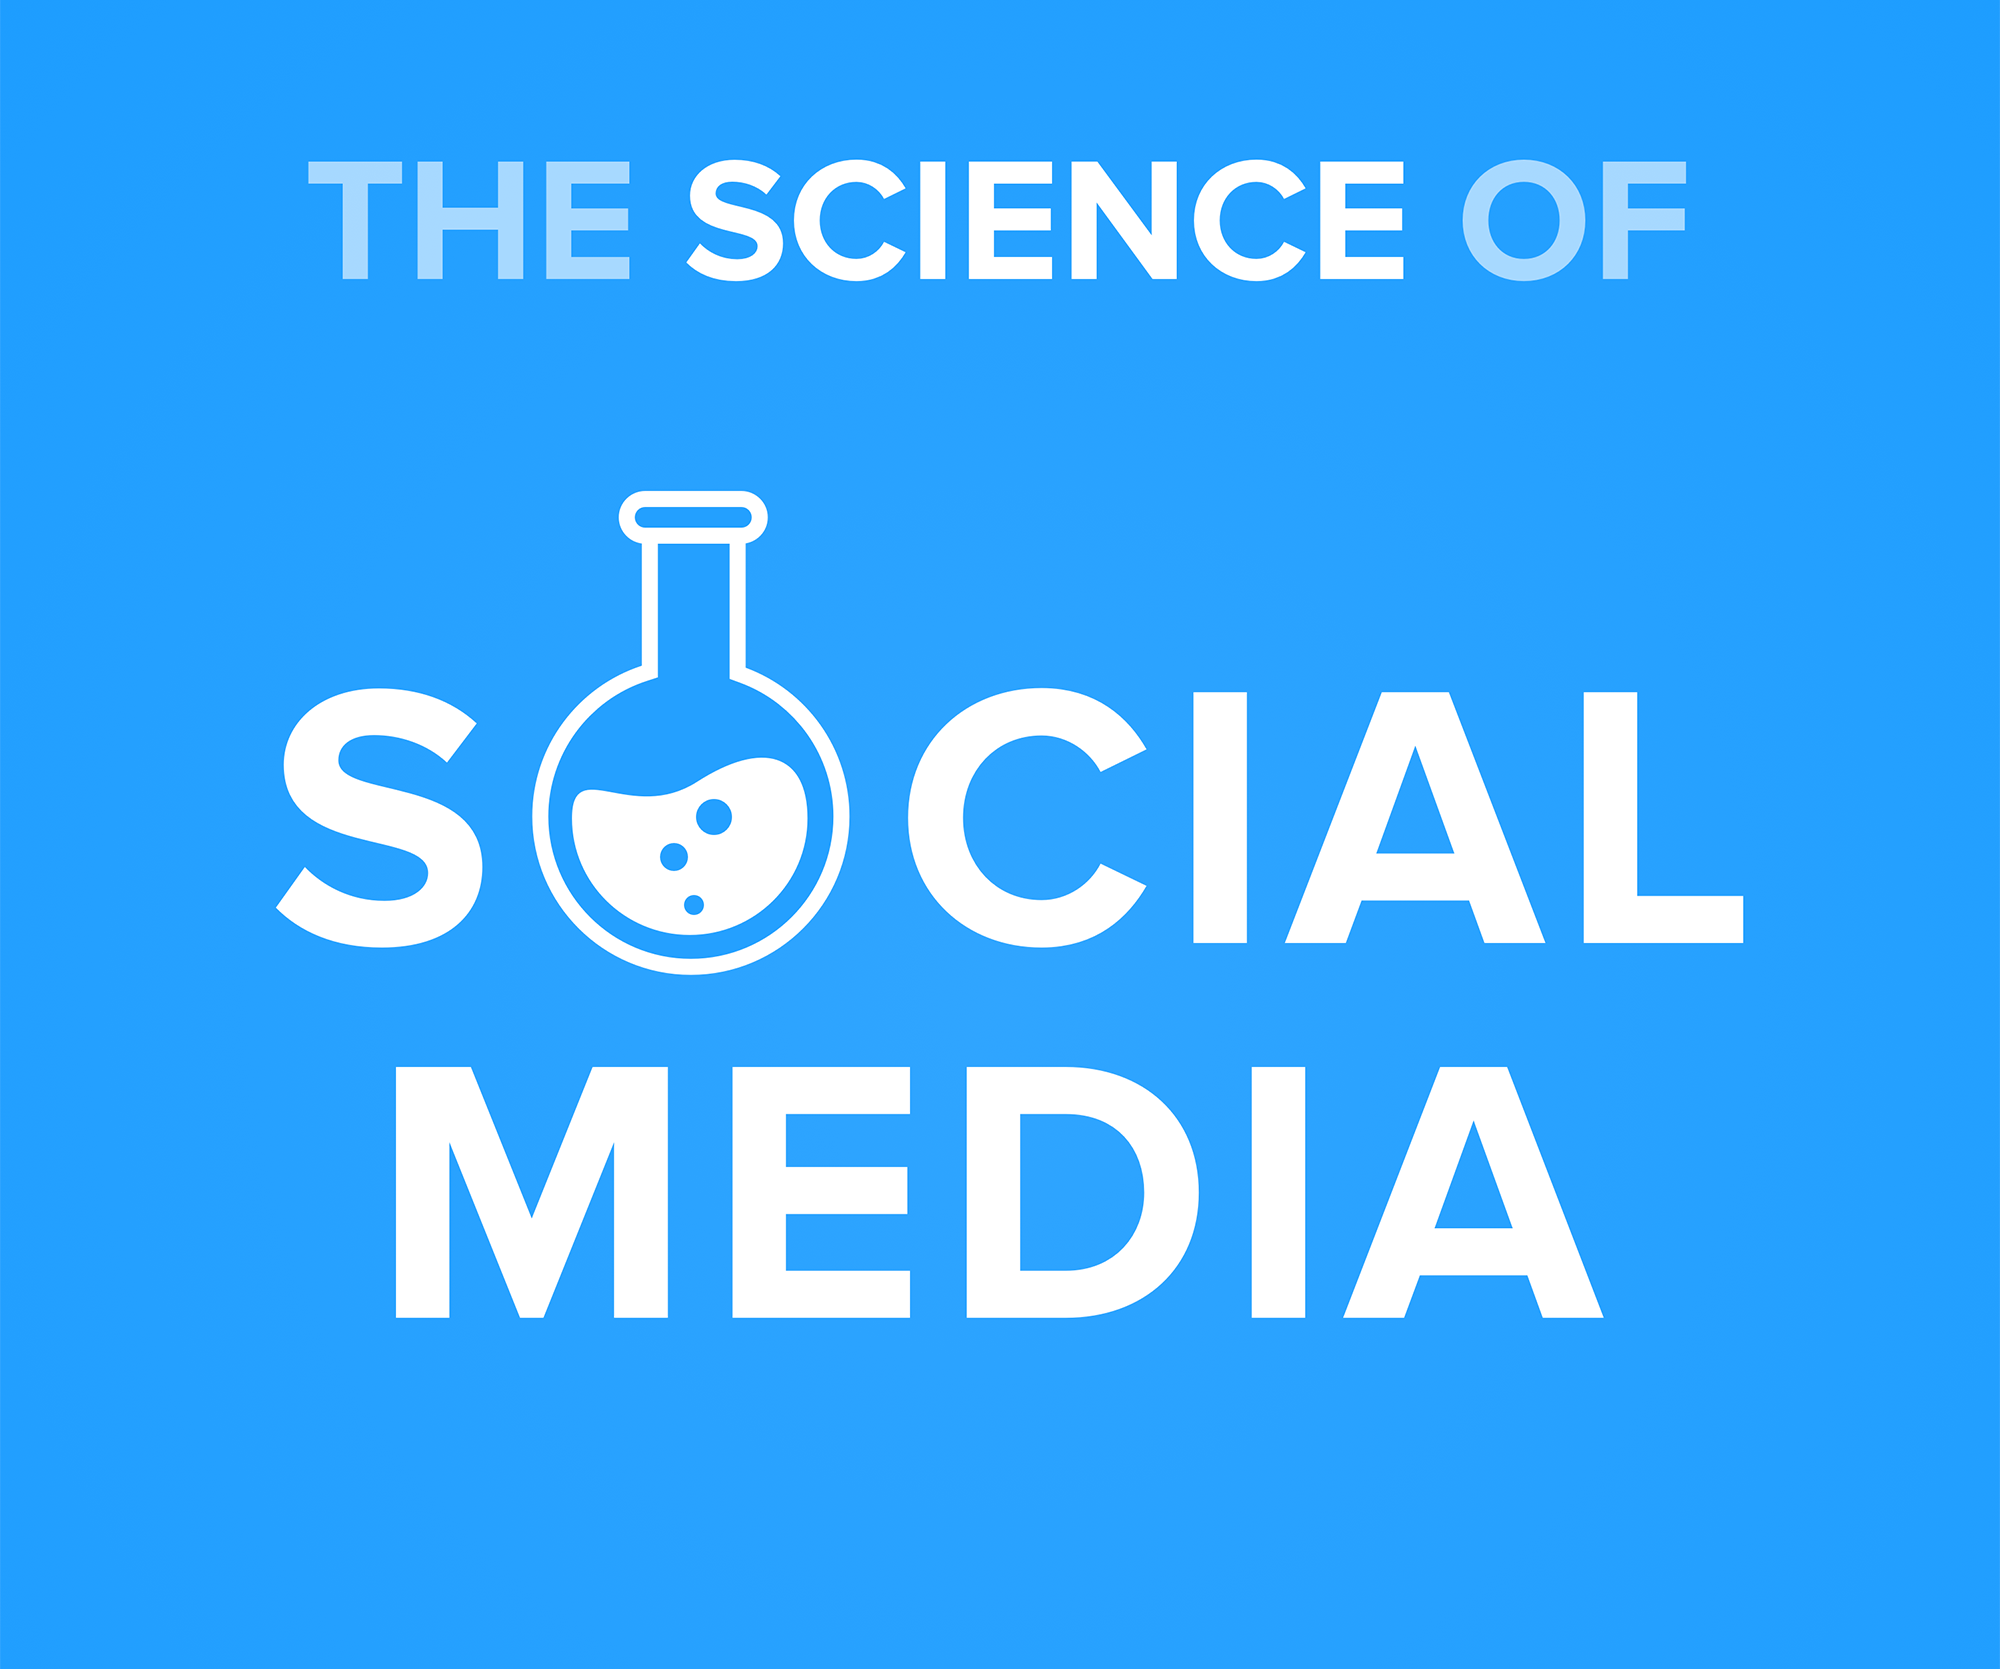 A photo of The Science of Social Media Podcast logo